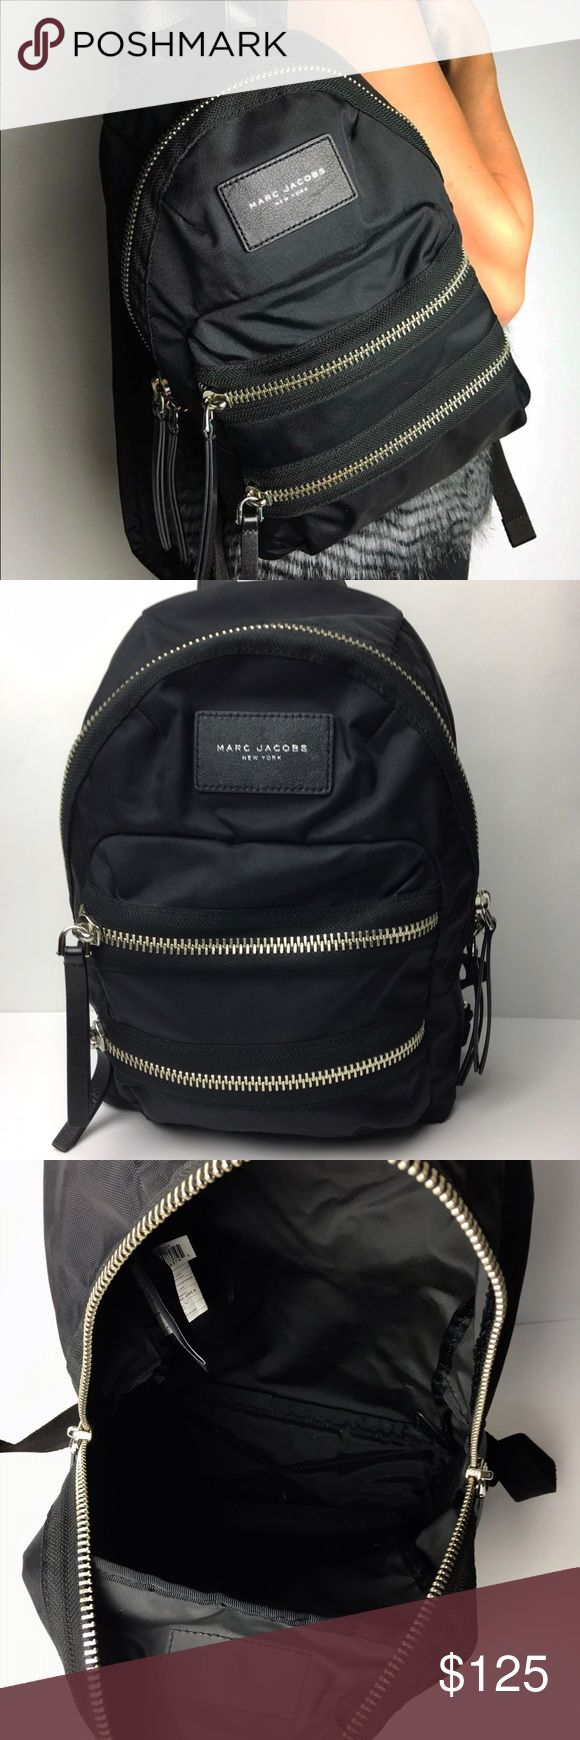 "Authentic Marc Jacobs Black Nylon Backpack This is a great UNISEX bag for travel, everyday use, computer/laptop messenger bag, diaper bag or just regular shoulder bag tote for all your stuff! This is a standard sized backpack compared to a medium/large handbag. This can be used as a shoulder purse or casual backpack. Backpack is BRAND NEW without tags attached.    DETAILS - Measurements: 12"" L x 16.5"" H x 3 5 W - Large roomy interior - Embossed Leather Marc Jacobs Logo on front - 2 front…"